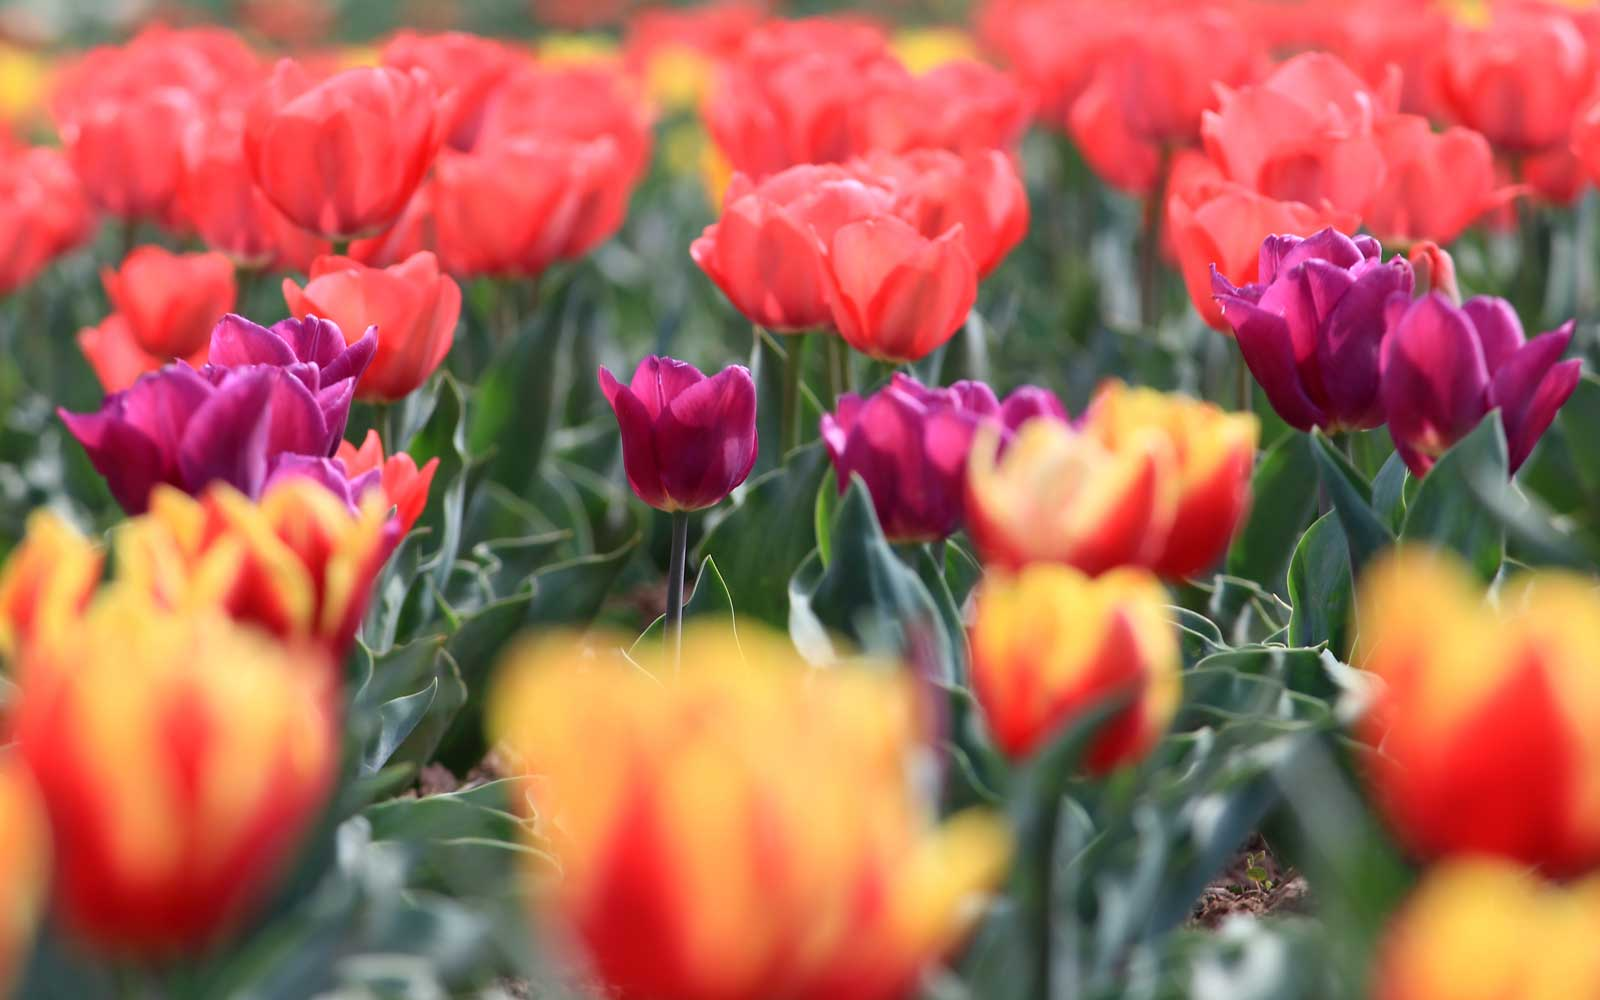 Asia's Largest Tulip Garden Is in Full Bloom and You Need to See the Colors